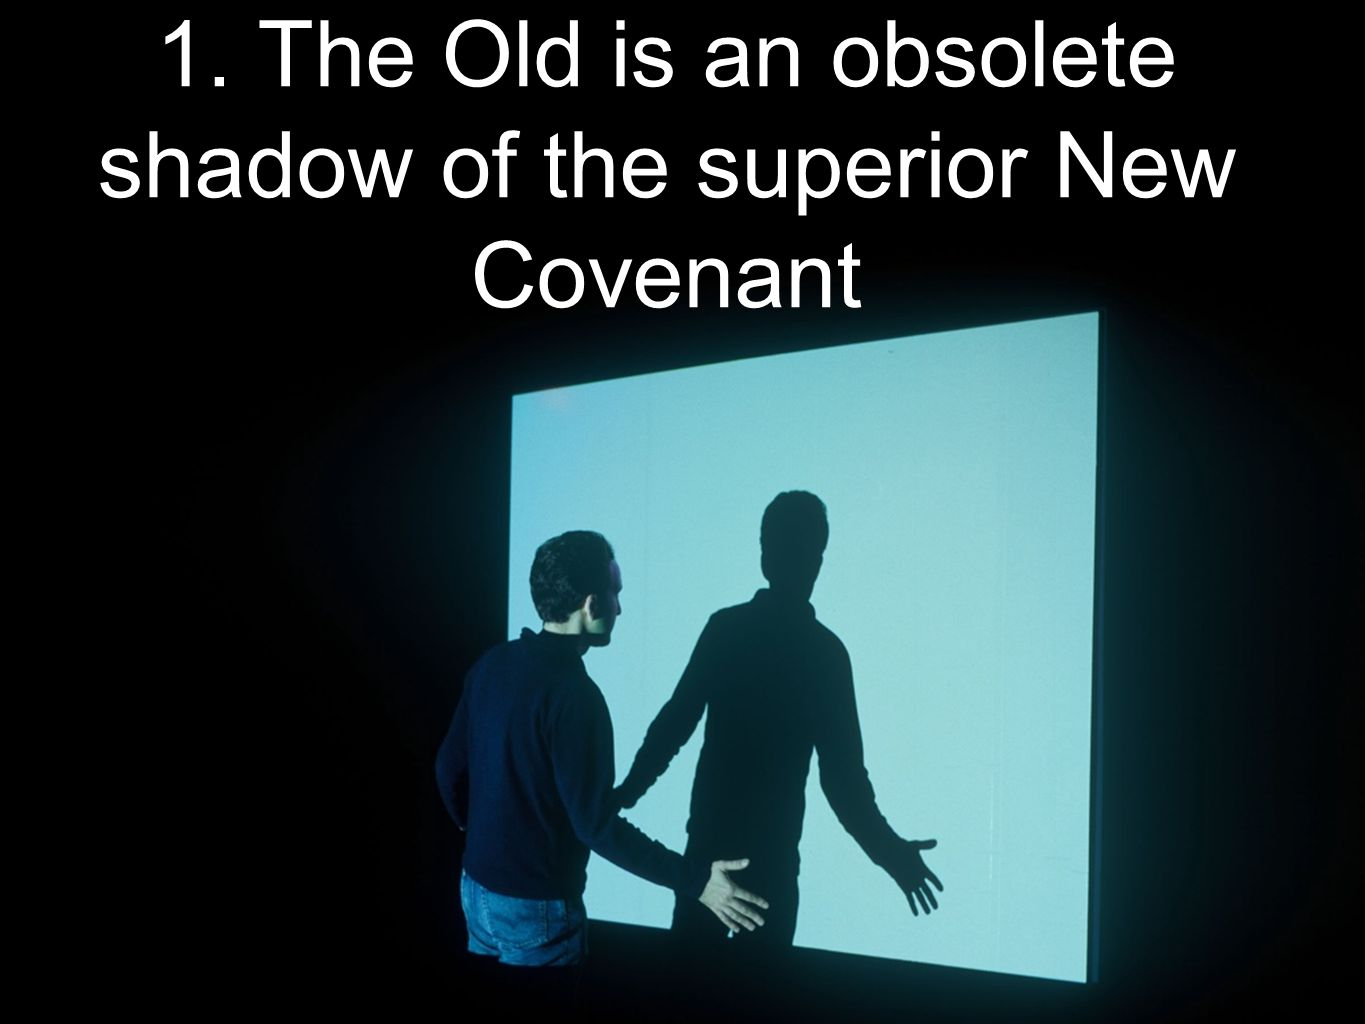 1. The Old is an obsolete shadow of the superior New Covenant